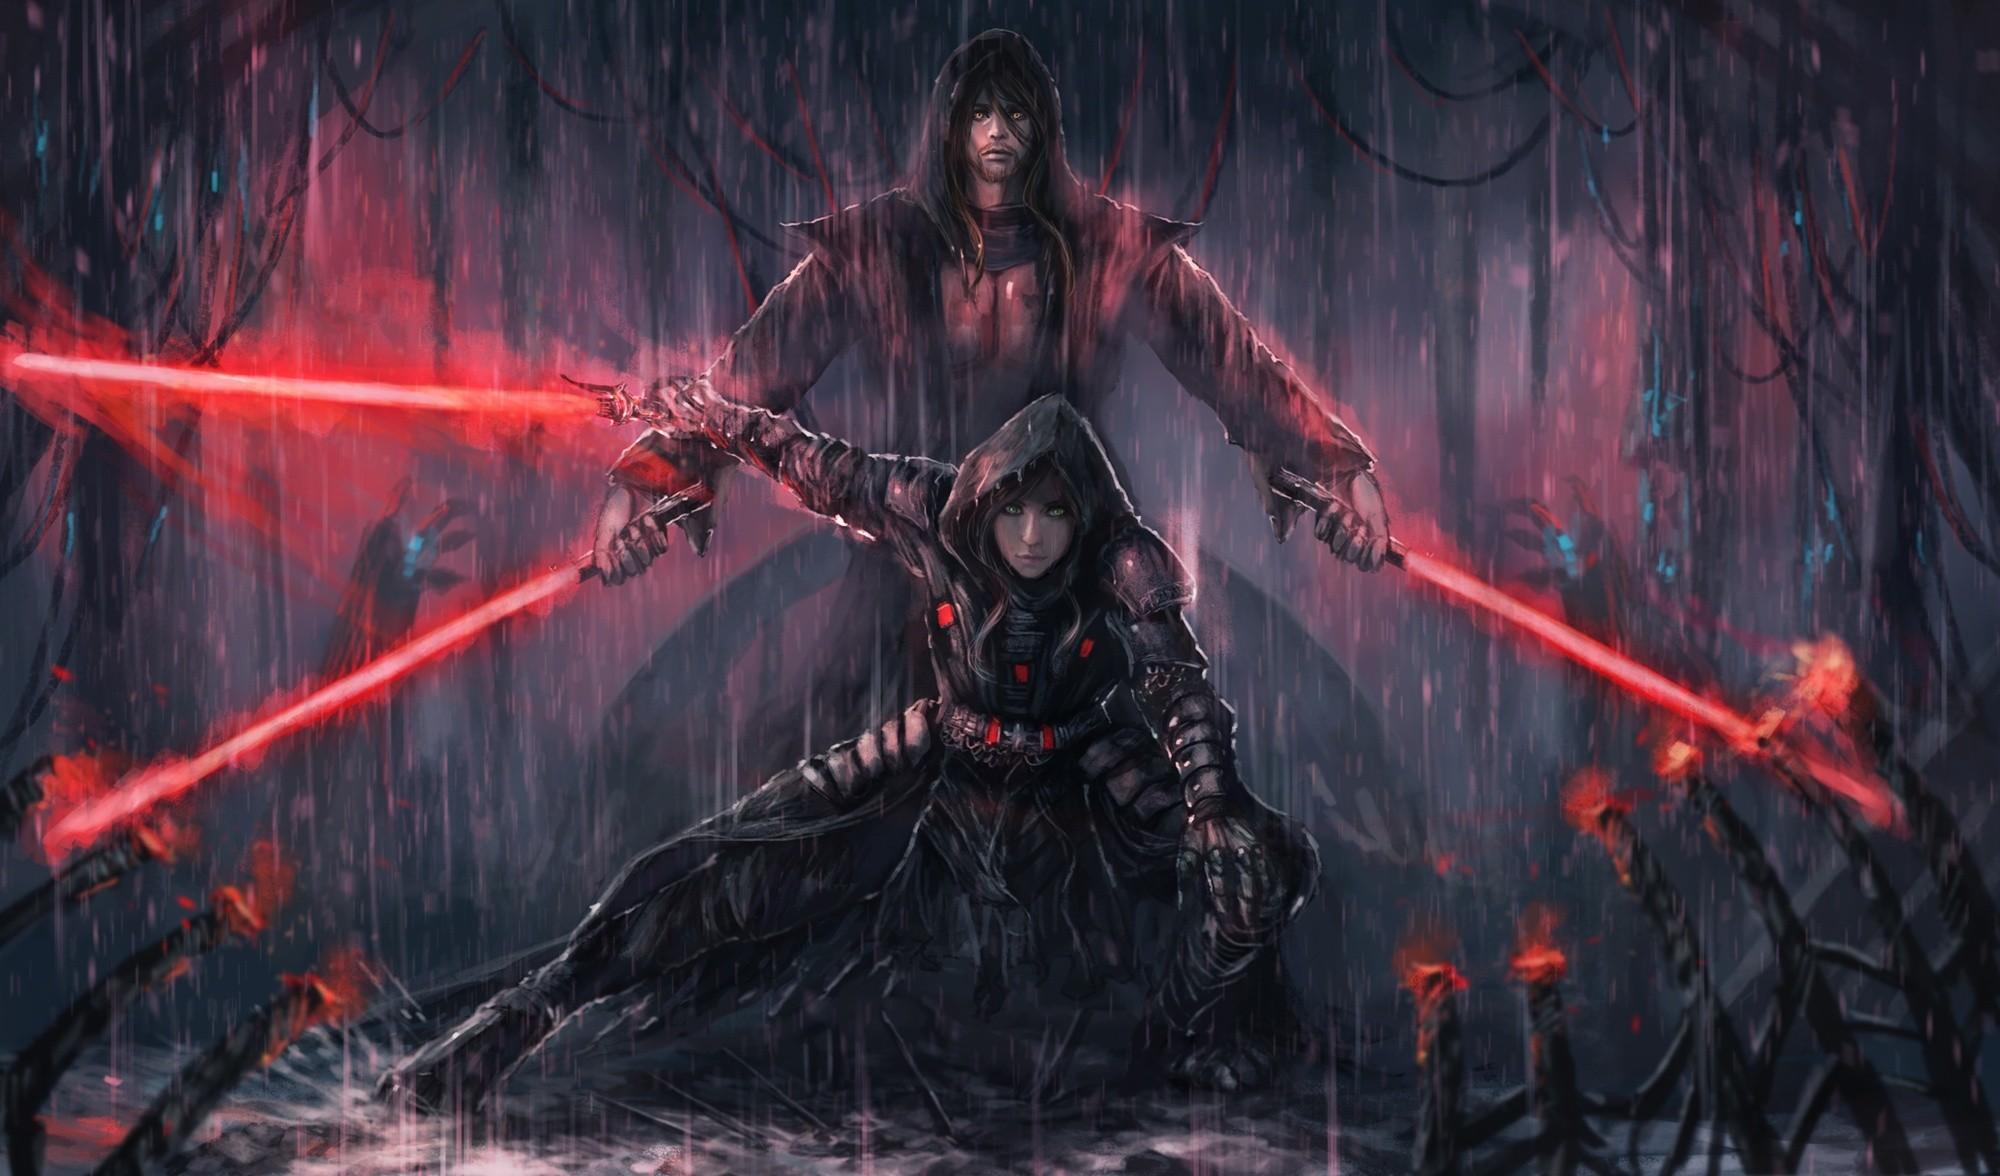 2000x1176 Lightsaber Sith Star Wars · HD Wallpaper | Background Image ID:771099